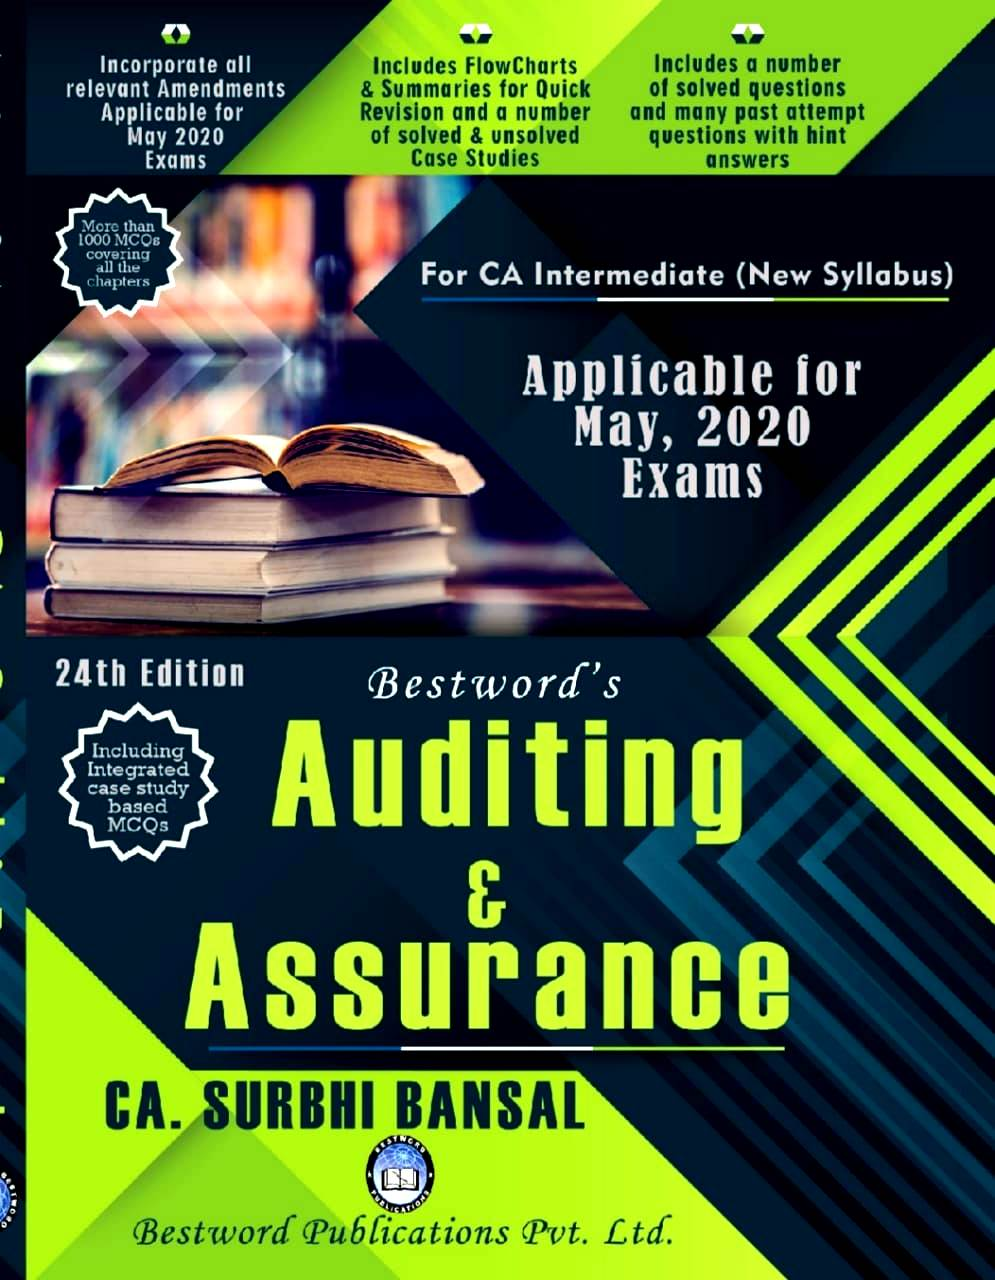 Bestword Auditing and Assurance (old syllabus) for CA IPCC by CA Surbhi bansal 24rd Edition for May, 2020 Exam